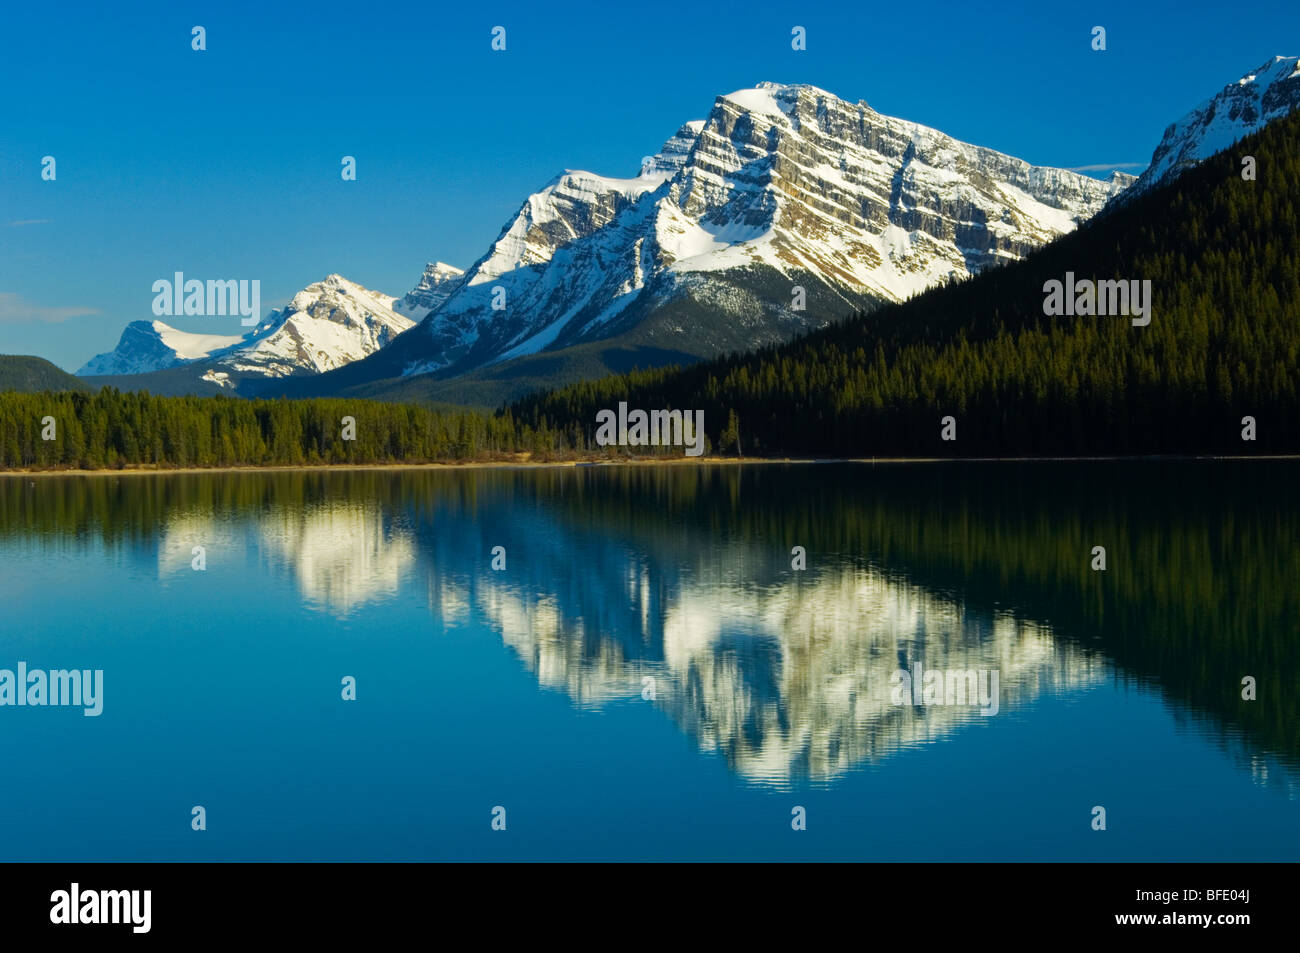 Mount Patterson, reflected in Lower Waterfowl Lake, Icefields Parkway, Banff National Park, Alberta, Canada - Stock Image